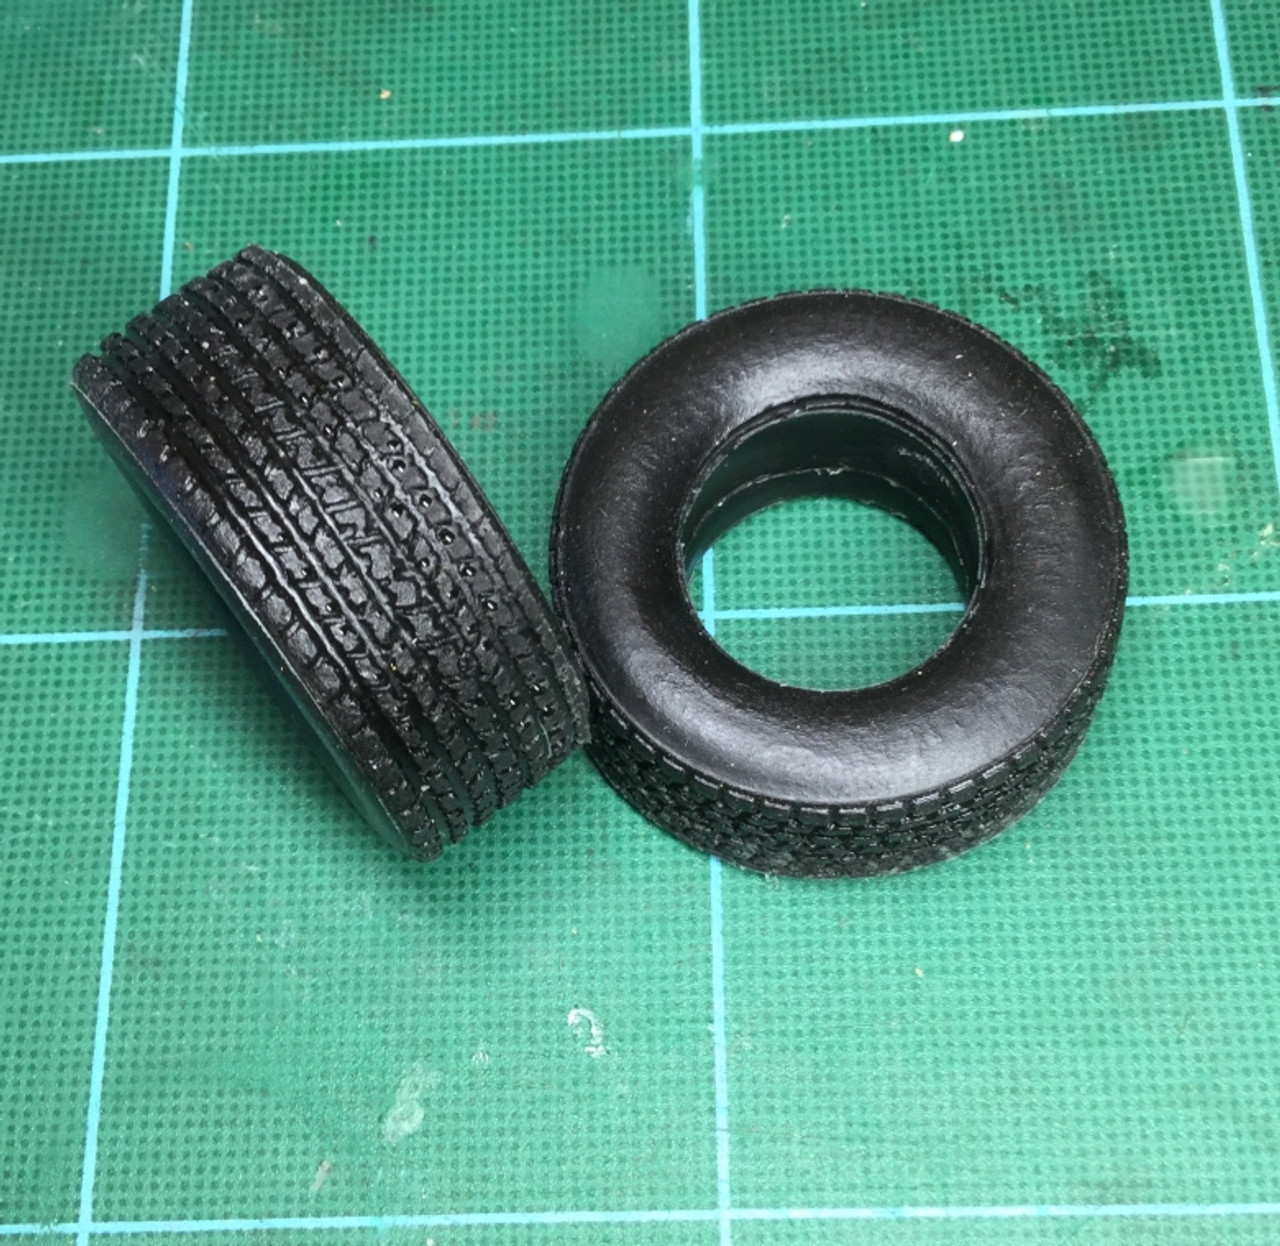 Large Street, 4x4 or Truck Tires, 1/25